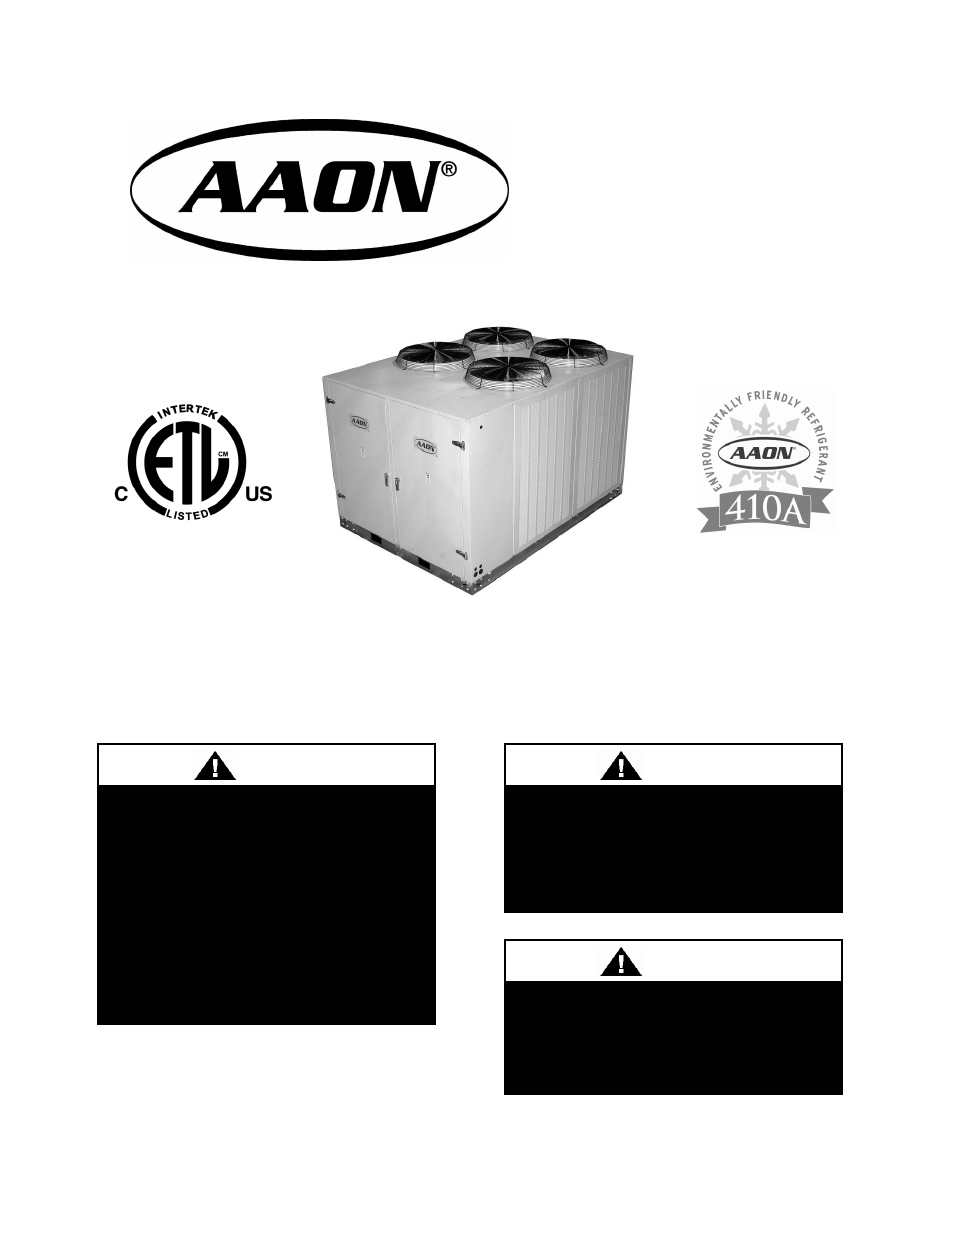 aaon cc 063 page1 aaon cc 063 user manual 52 pages also for cc 055, cc 045, cc Aaon Parts Diagram at virtualis.co